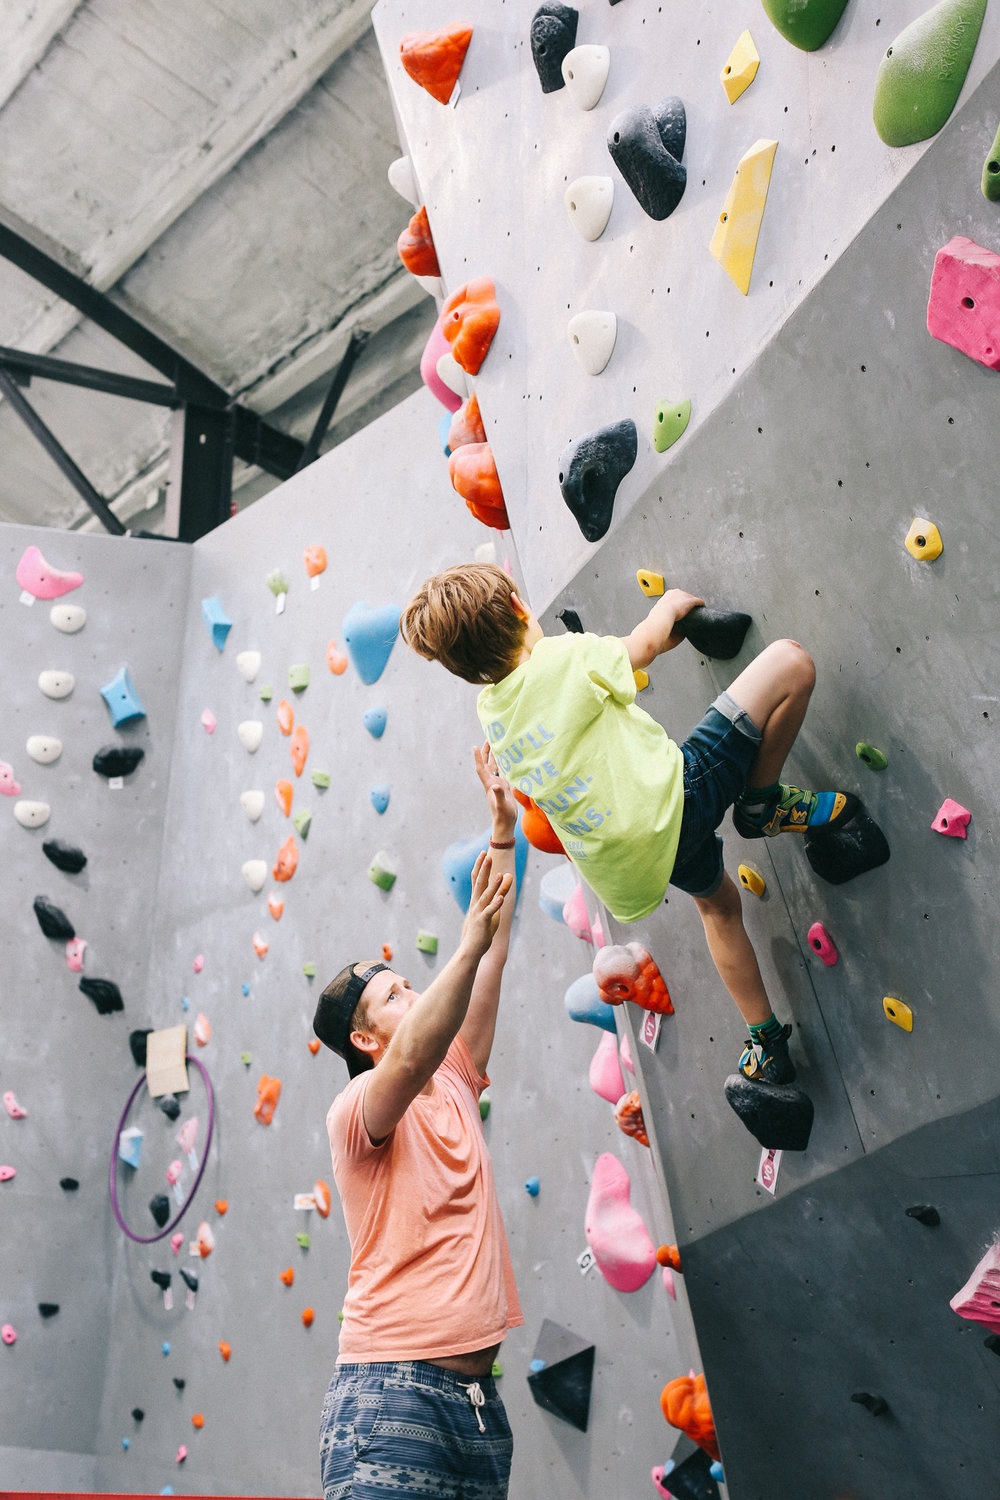 Terra Firma Bouldering | Youth Rec Teams | 9-11 Year Olds